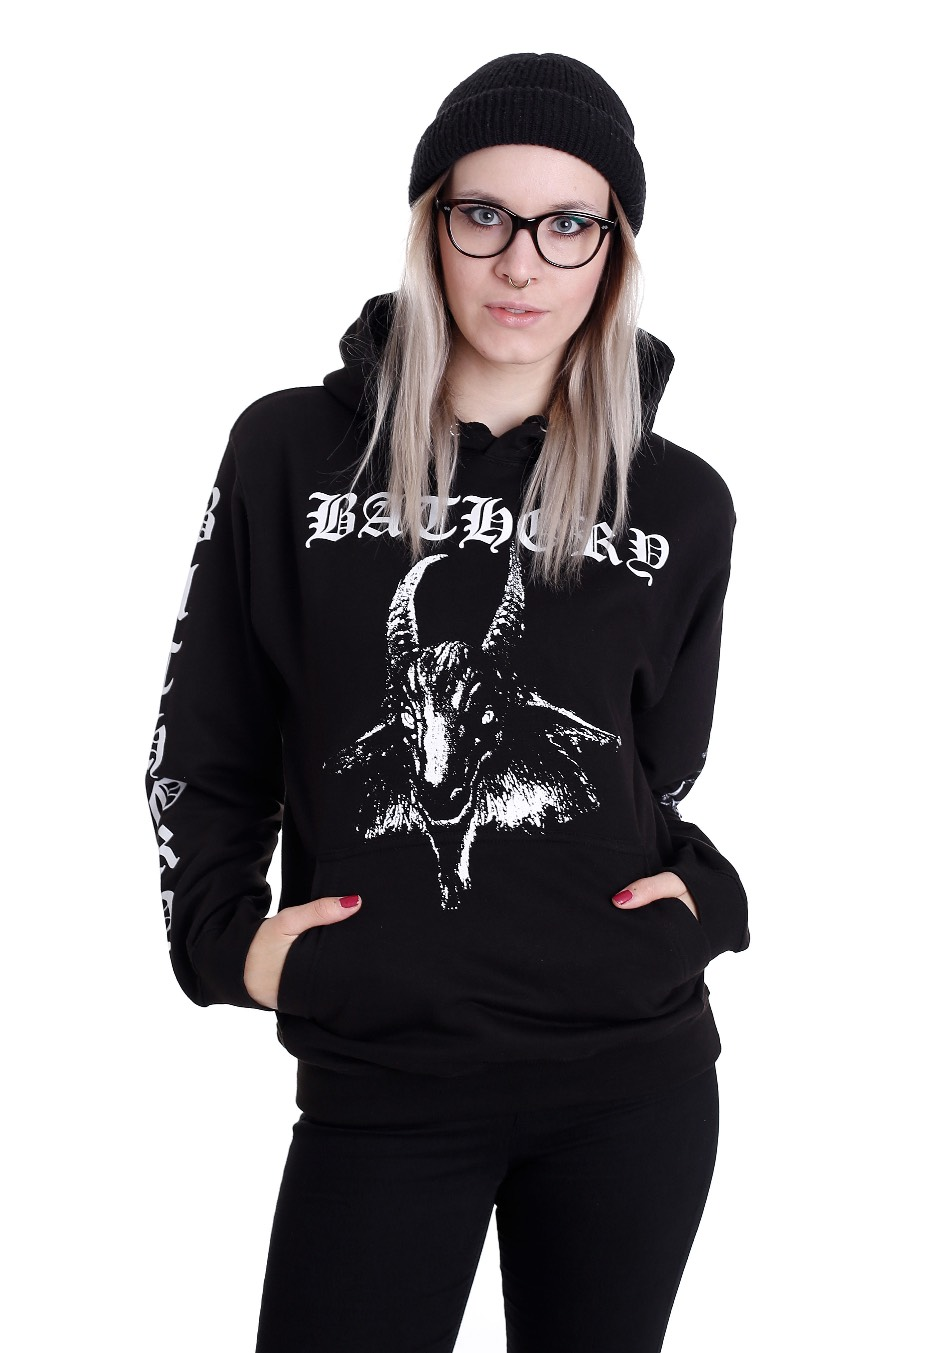 bathory goat hoodie offizieller metal merchandise